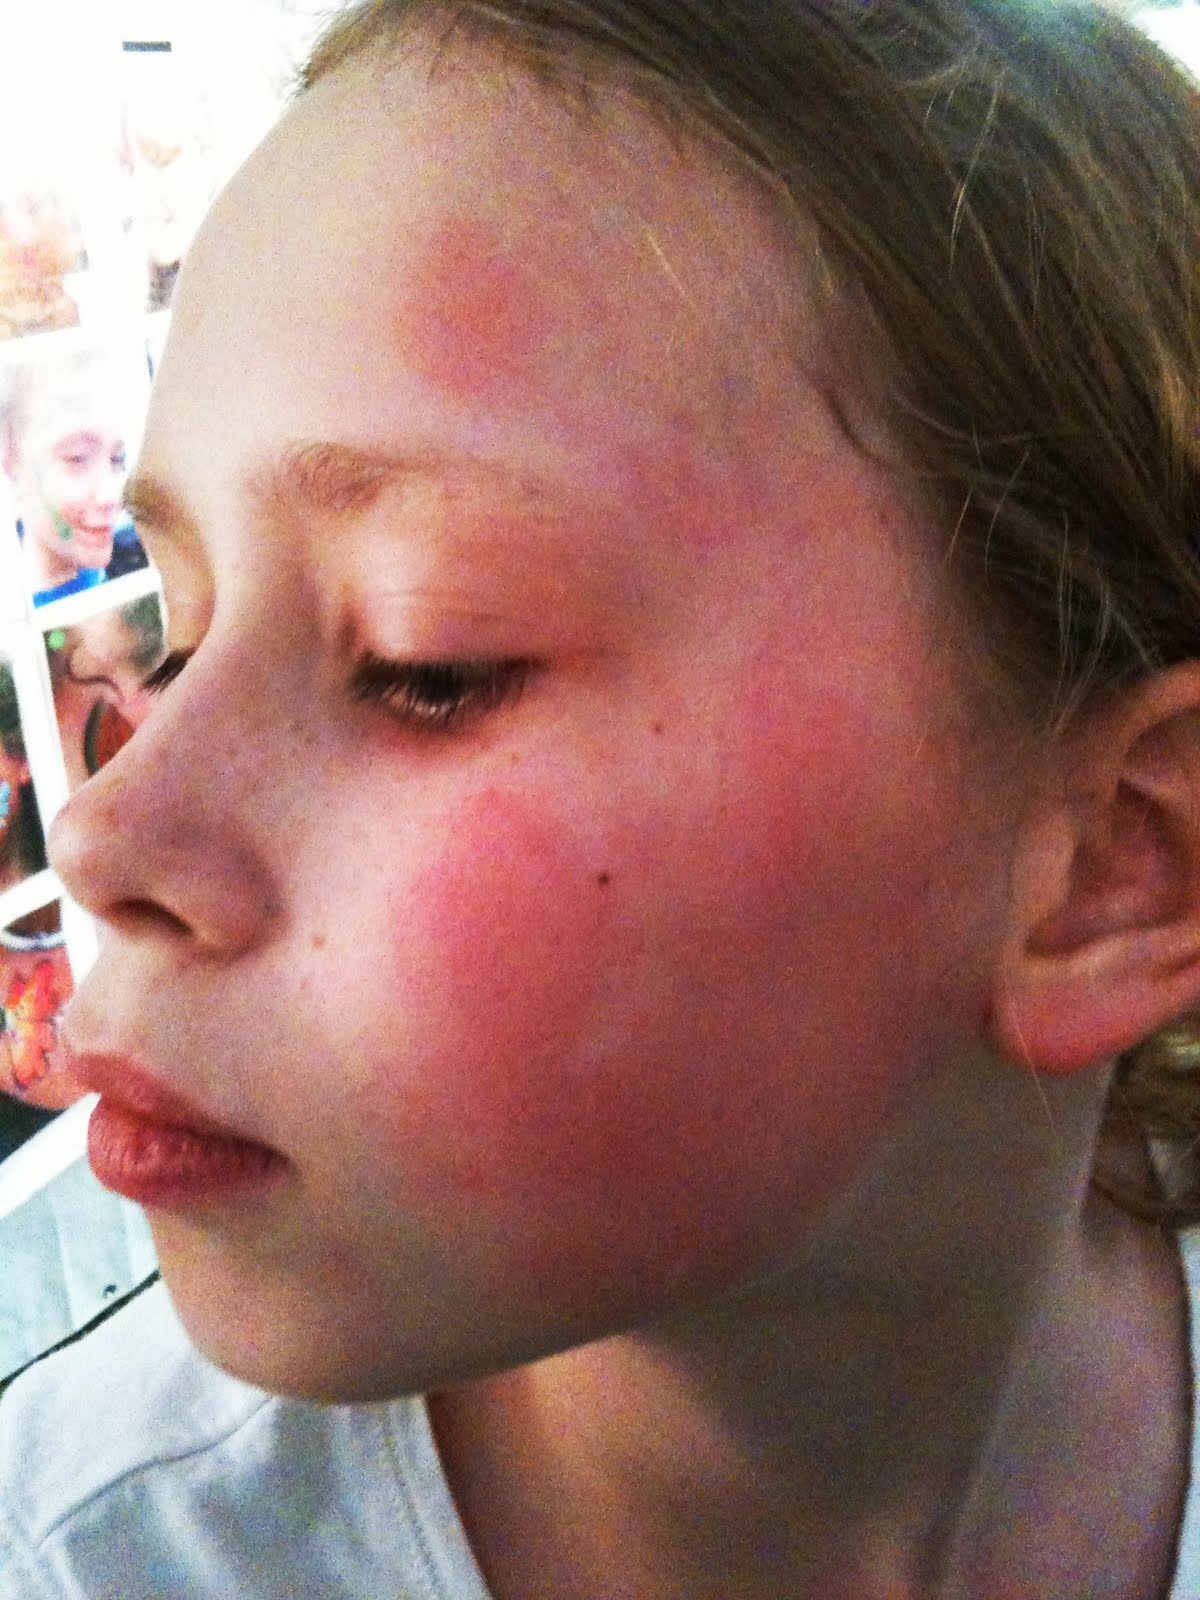 allergic reaction rashes from latex paint